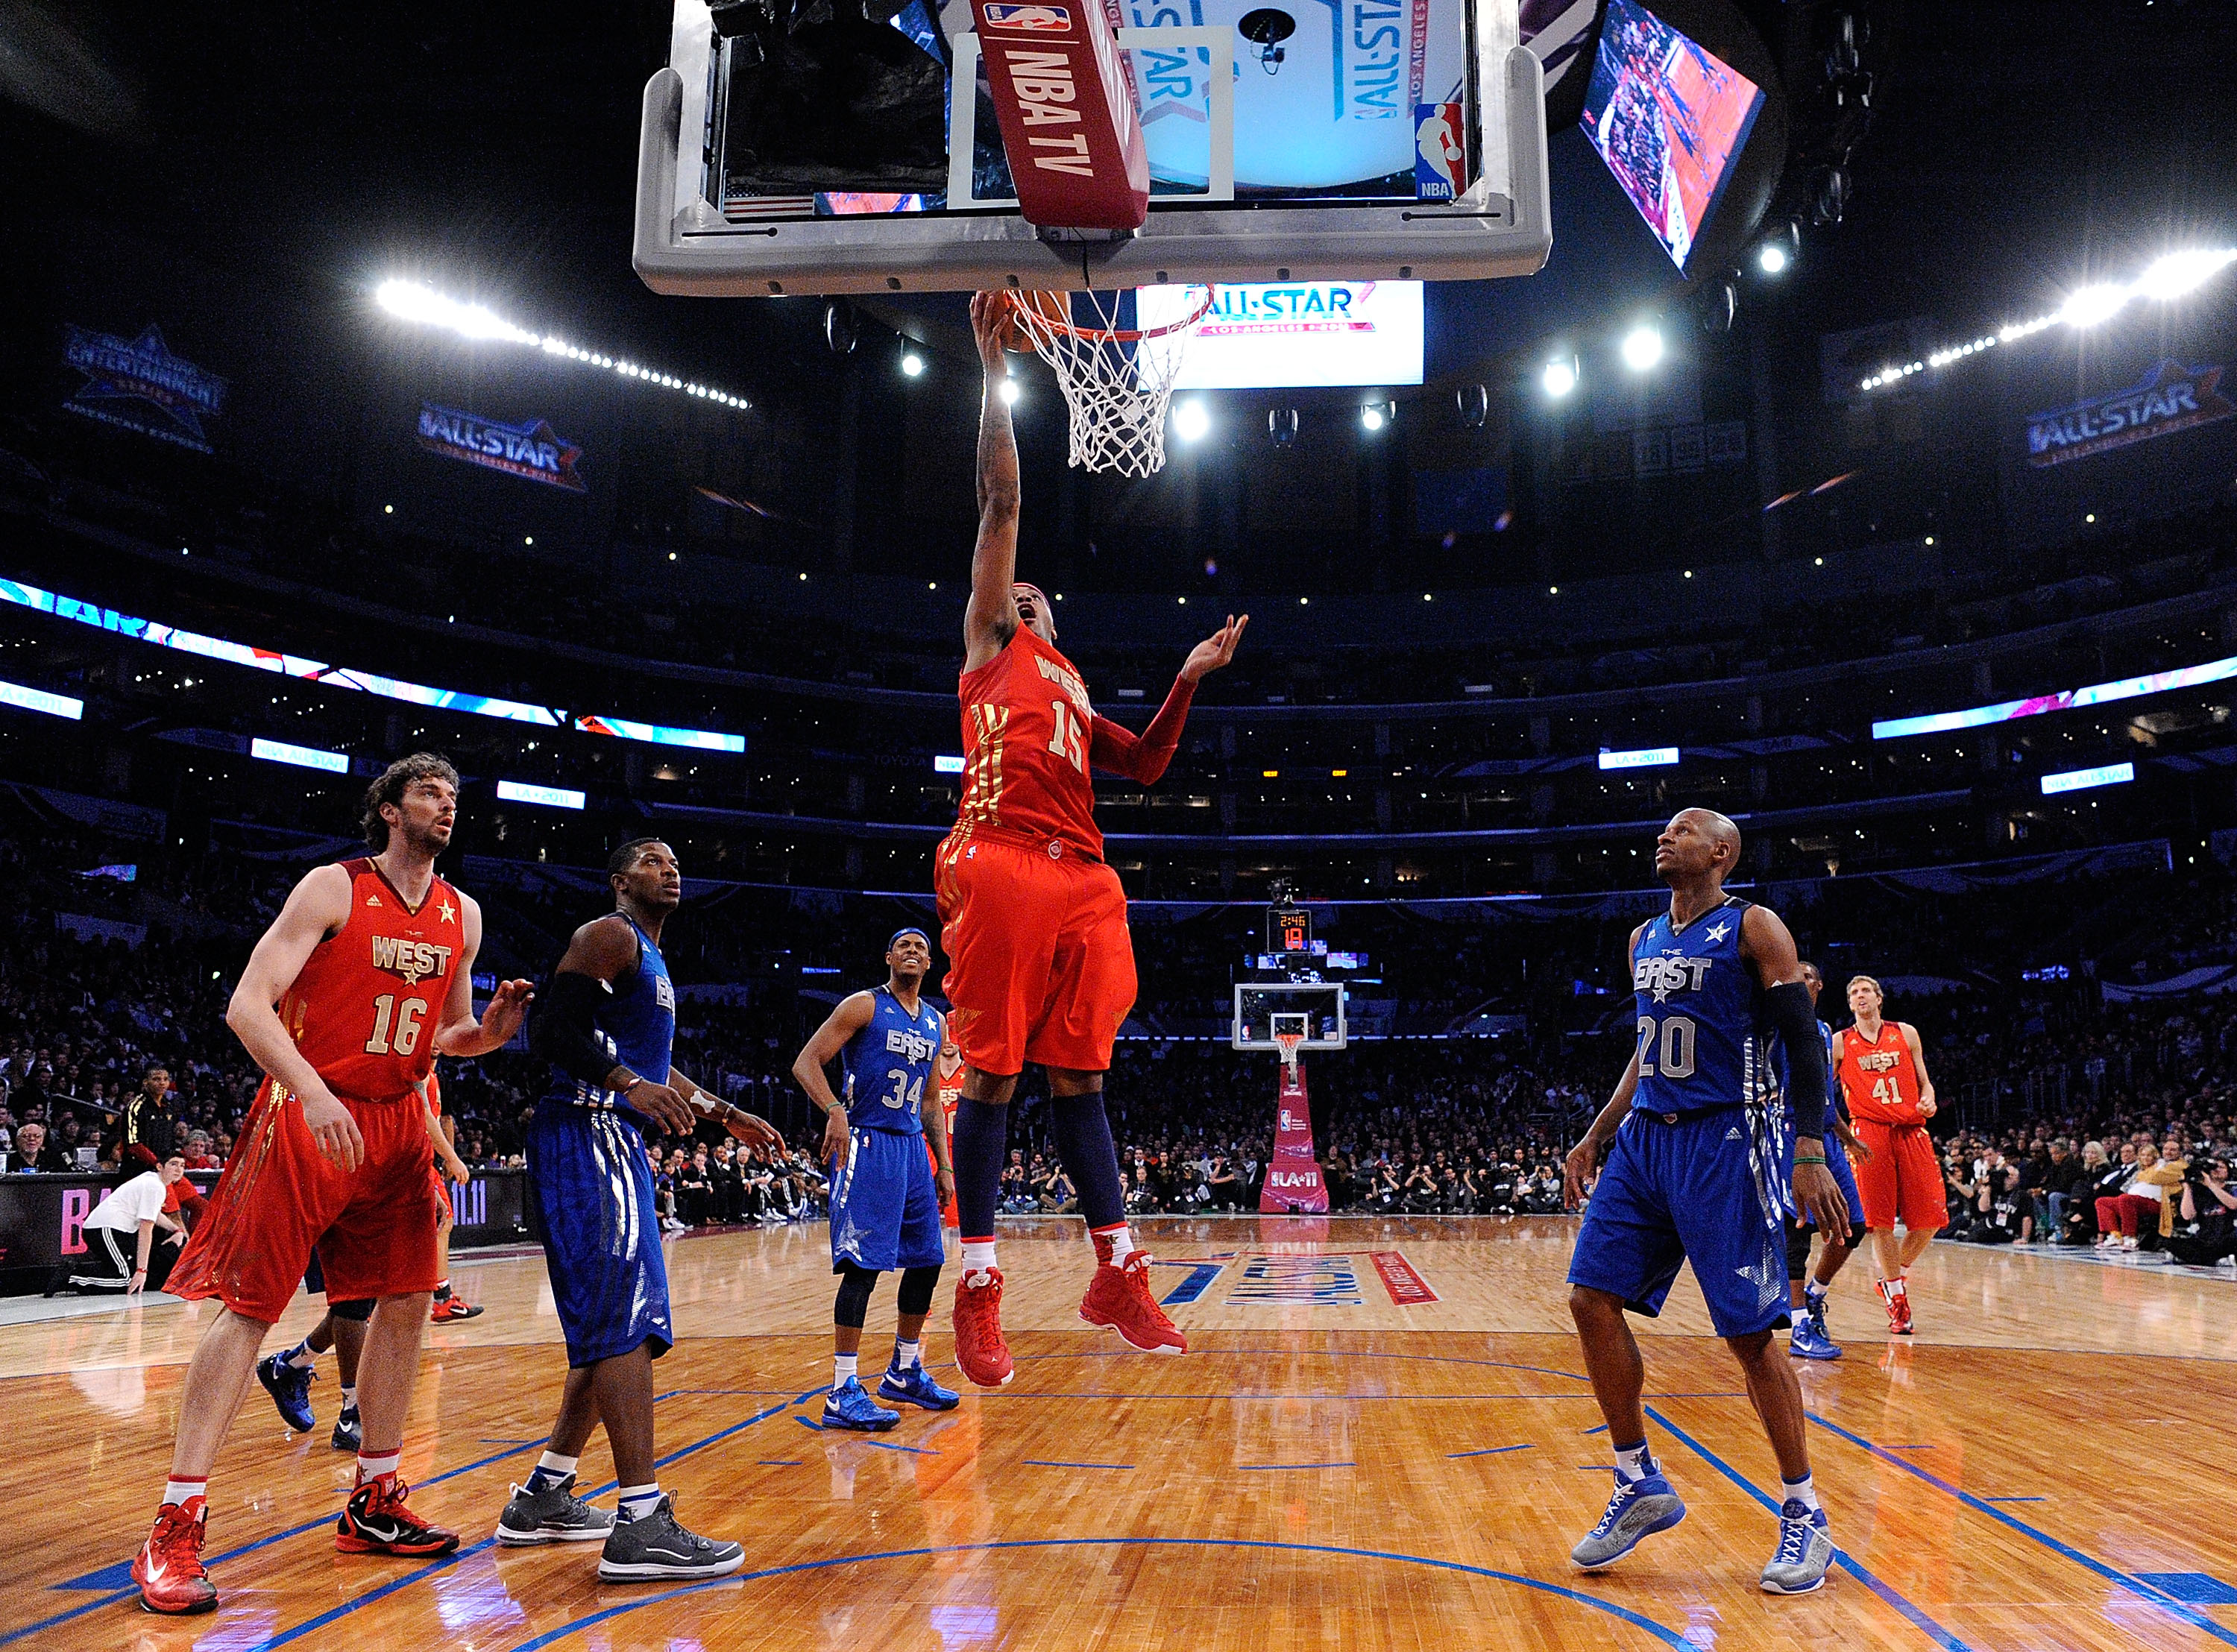 LOS ANGELES, CA - FEBRUARY 20:  Carmelo Anthony #15 of the Denver Nuggets and the Western Conference lays the ball up in the 2011 NBA All-Star Game at Staples Center on February 20, 2011 in Los Angeles, California. NOTE TO USER: User expressly acknowledge